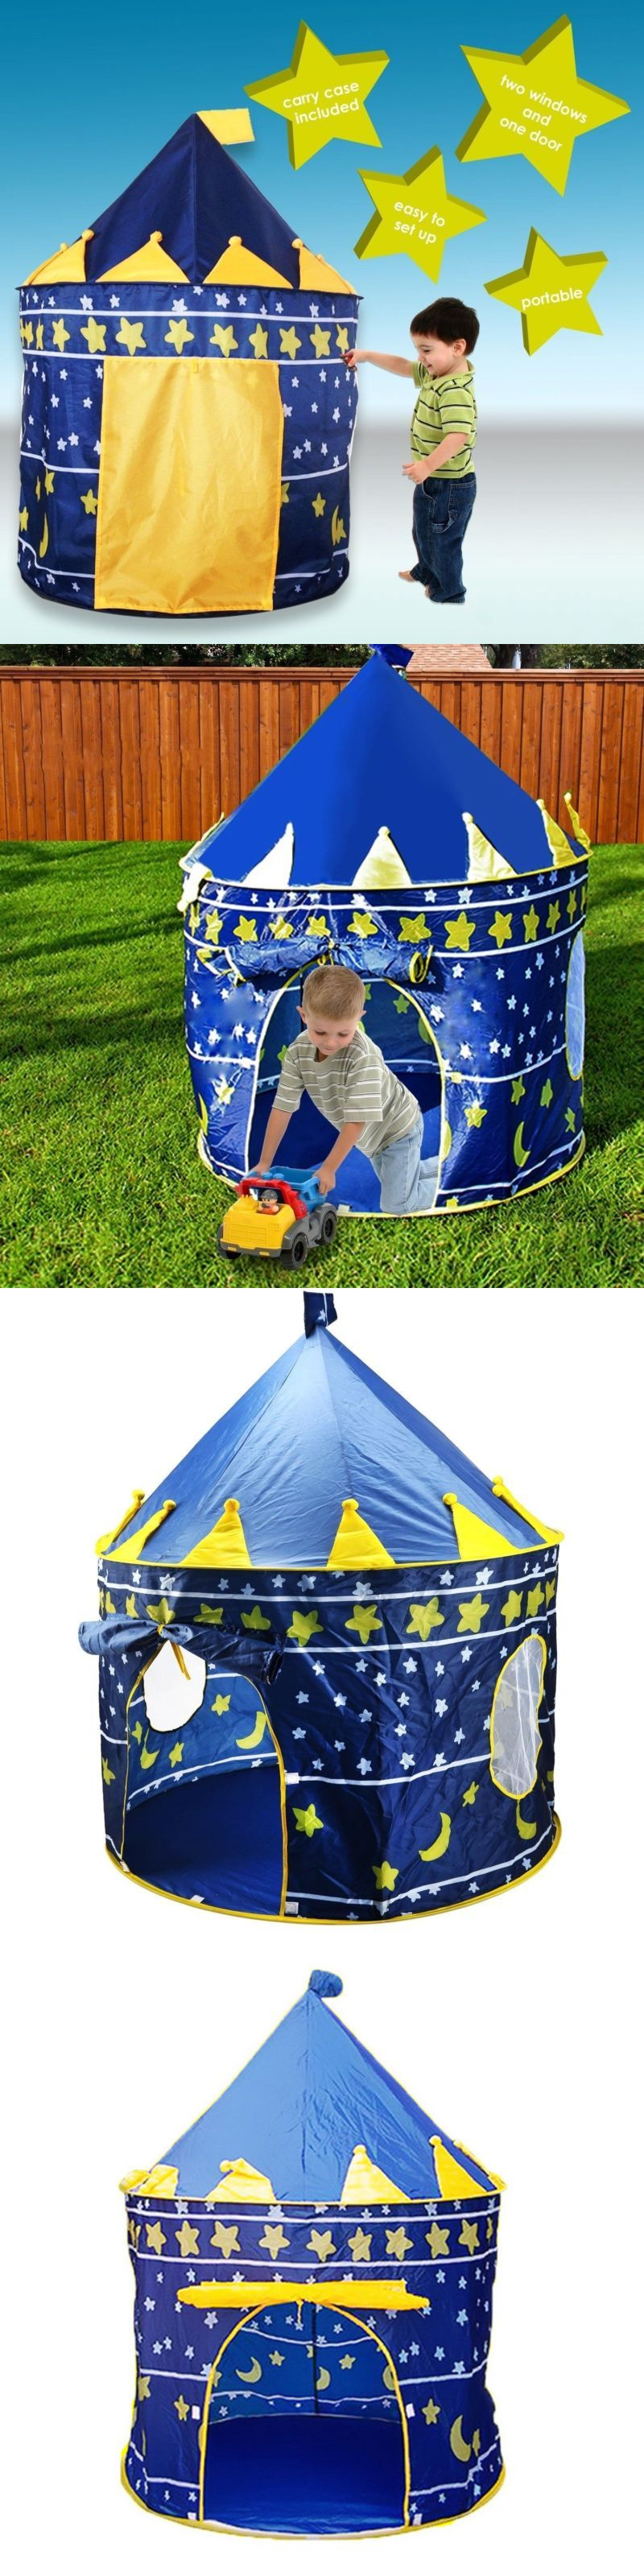 Tents Tunnels and Playhuts 145994 Portable Folding Kids Play Tent Blue Girl Princess Castle Outdoor & Tents Tunnels and Playhuts 145994: Portable Folding Kids Play Tent ...